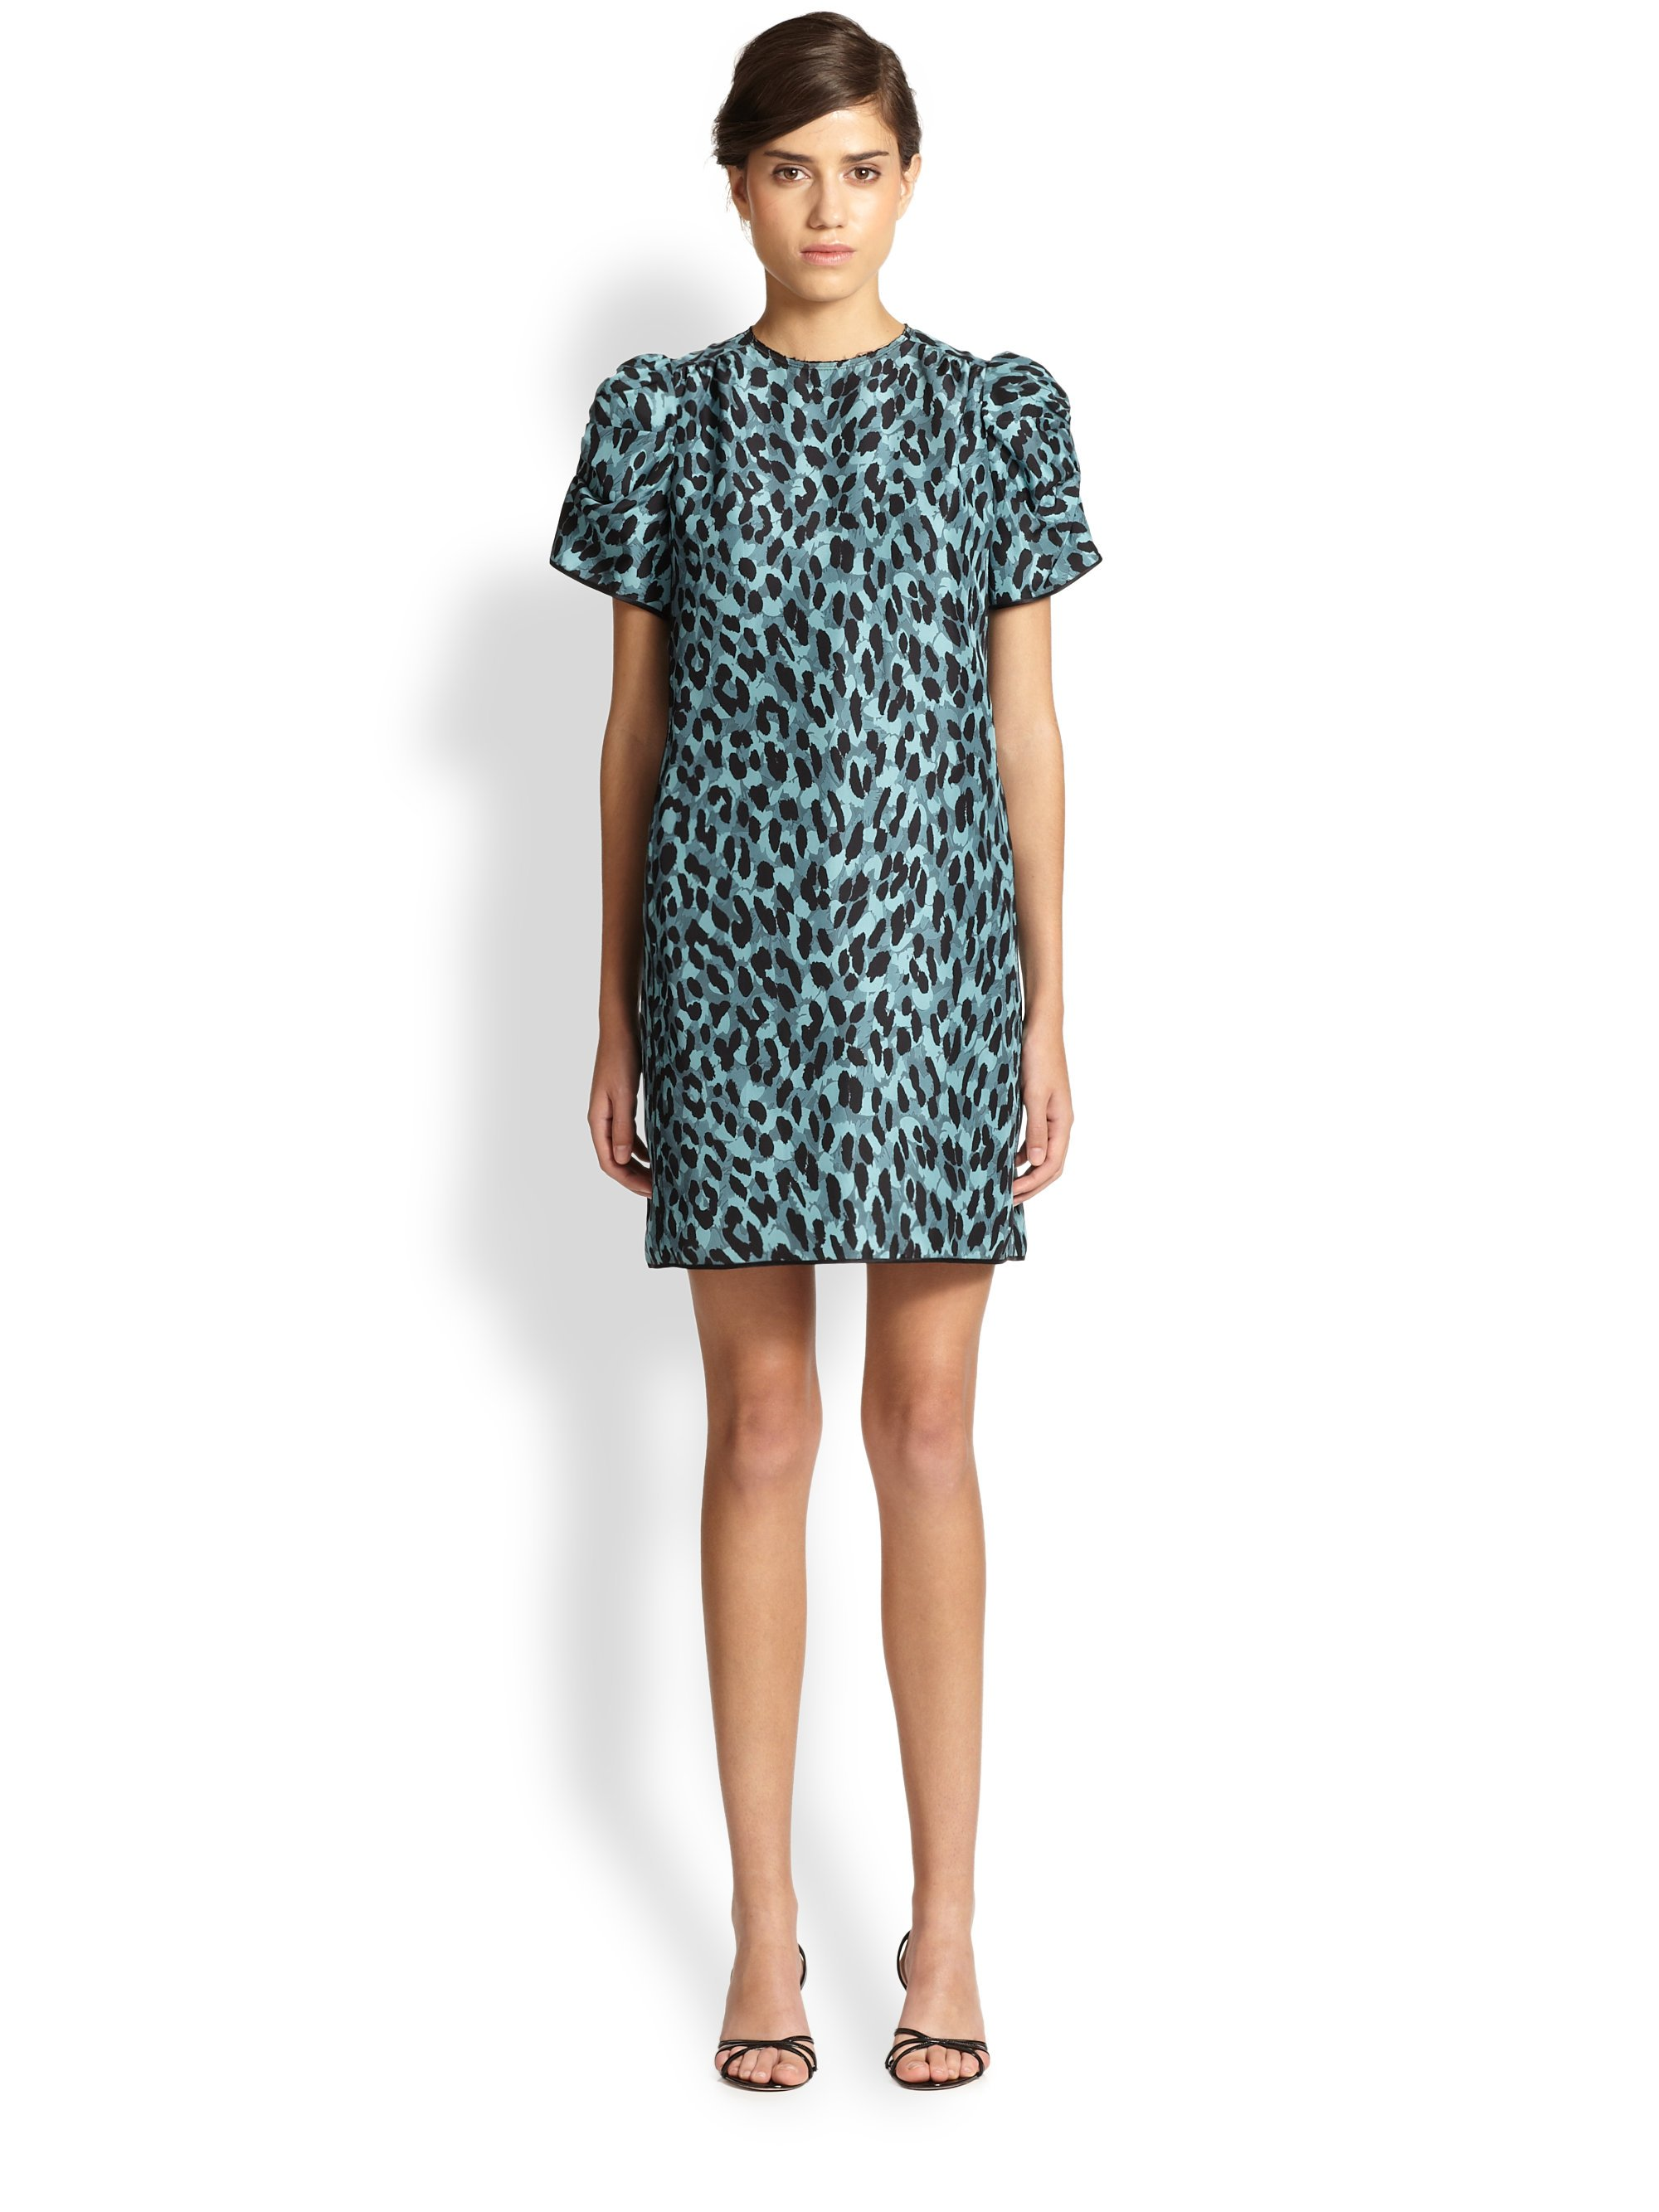 Marc jacobs Silk Leopard-Print Dress in Blue  Lyst